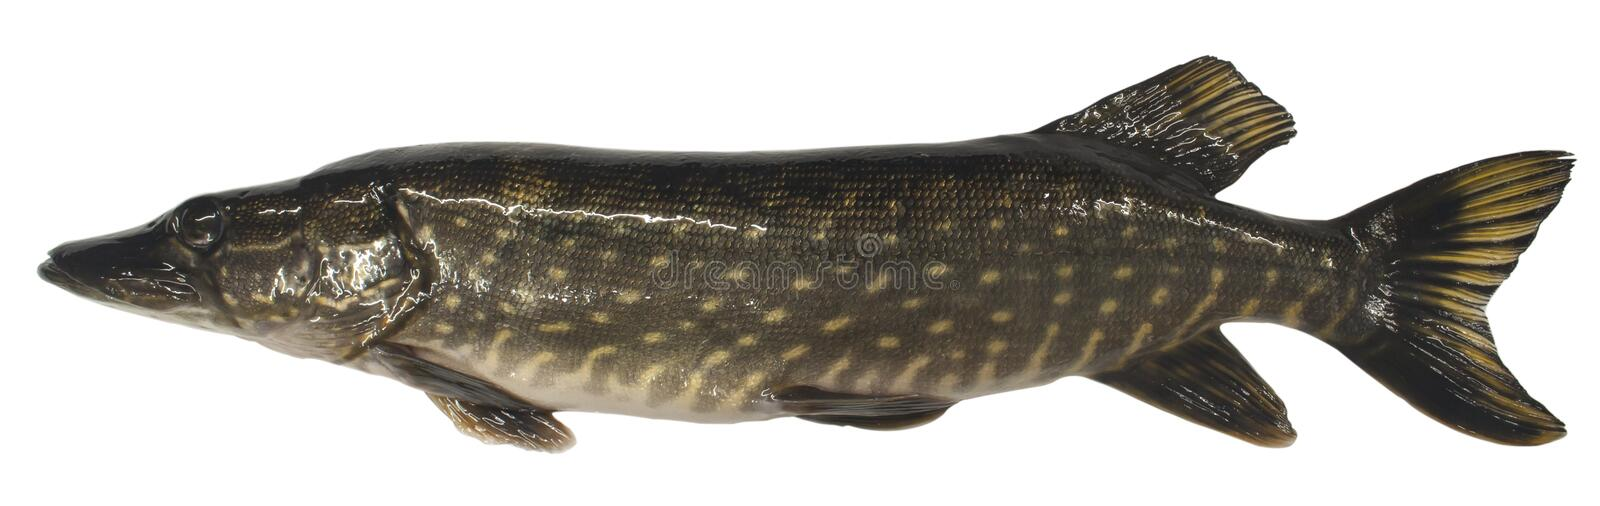 Download Big pike stock image. Image of isolated, uncooked, lucius - 83716507